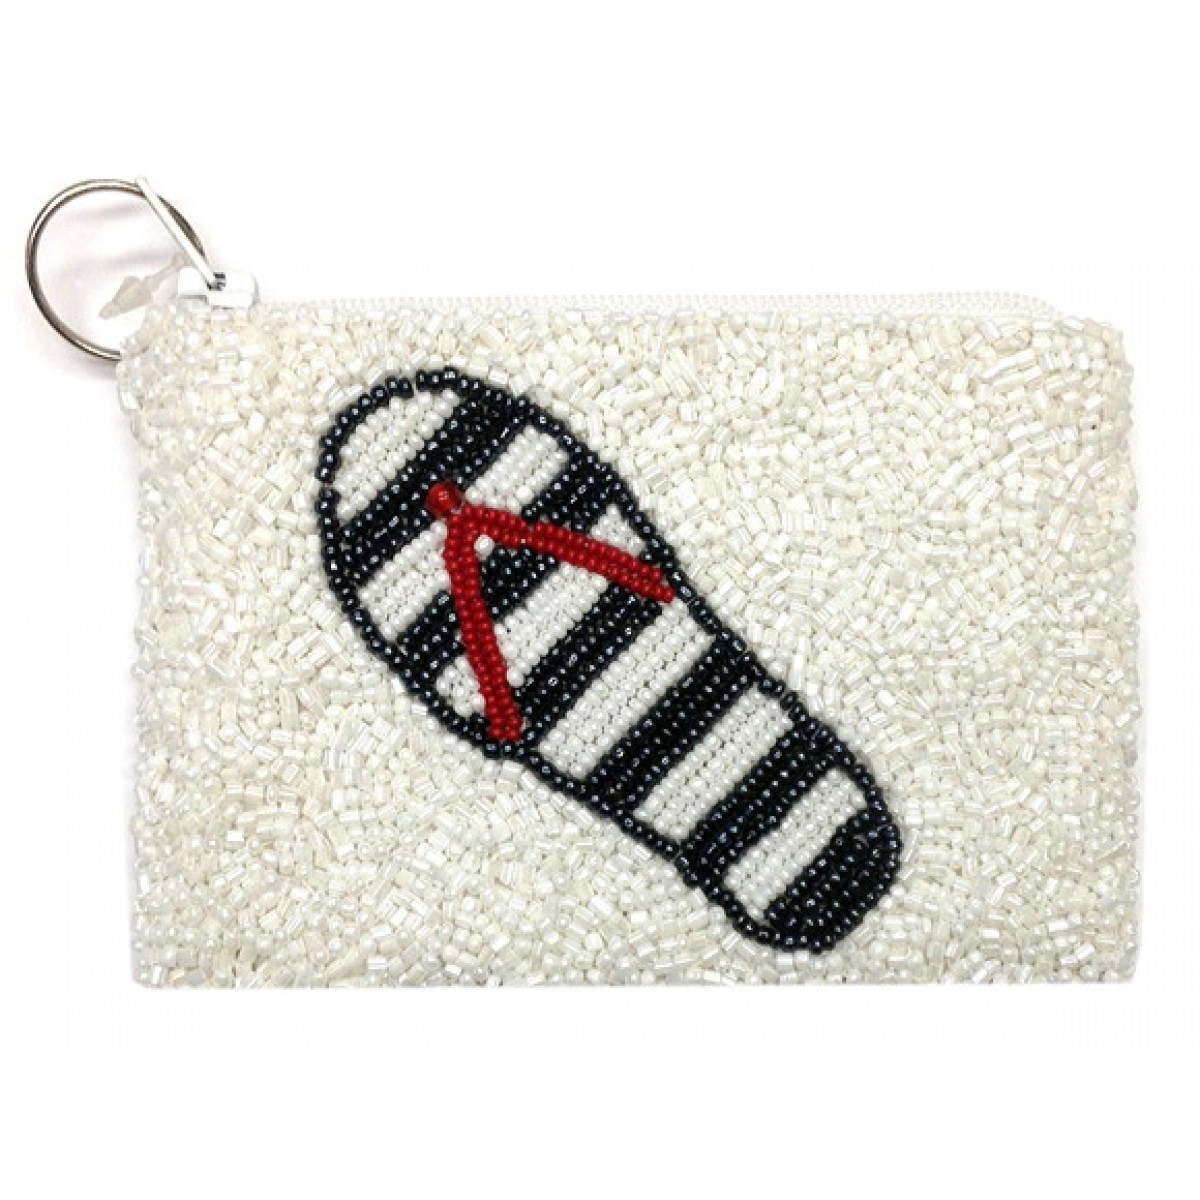 Beaded Slippers Coin Purse